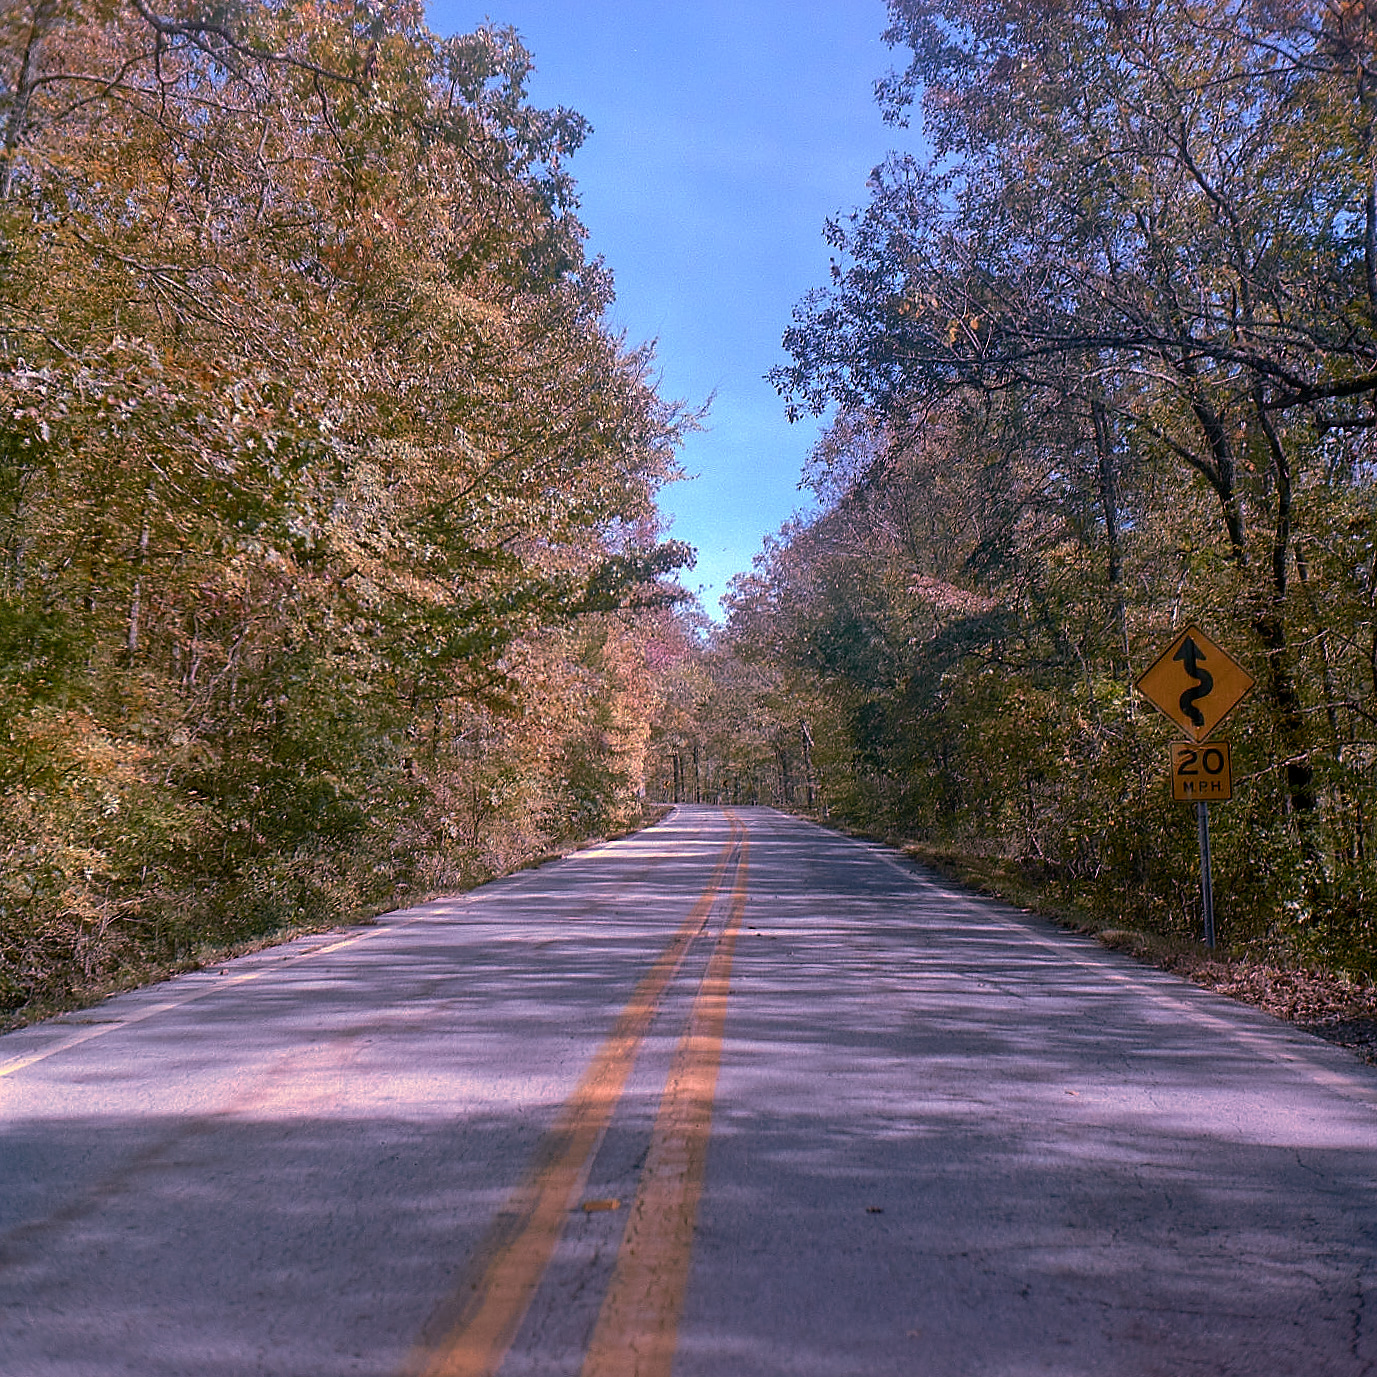 The Pig Trail Arkansas Map.Pig Trail Scenic Byway Ar 2017 James Cockroft